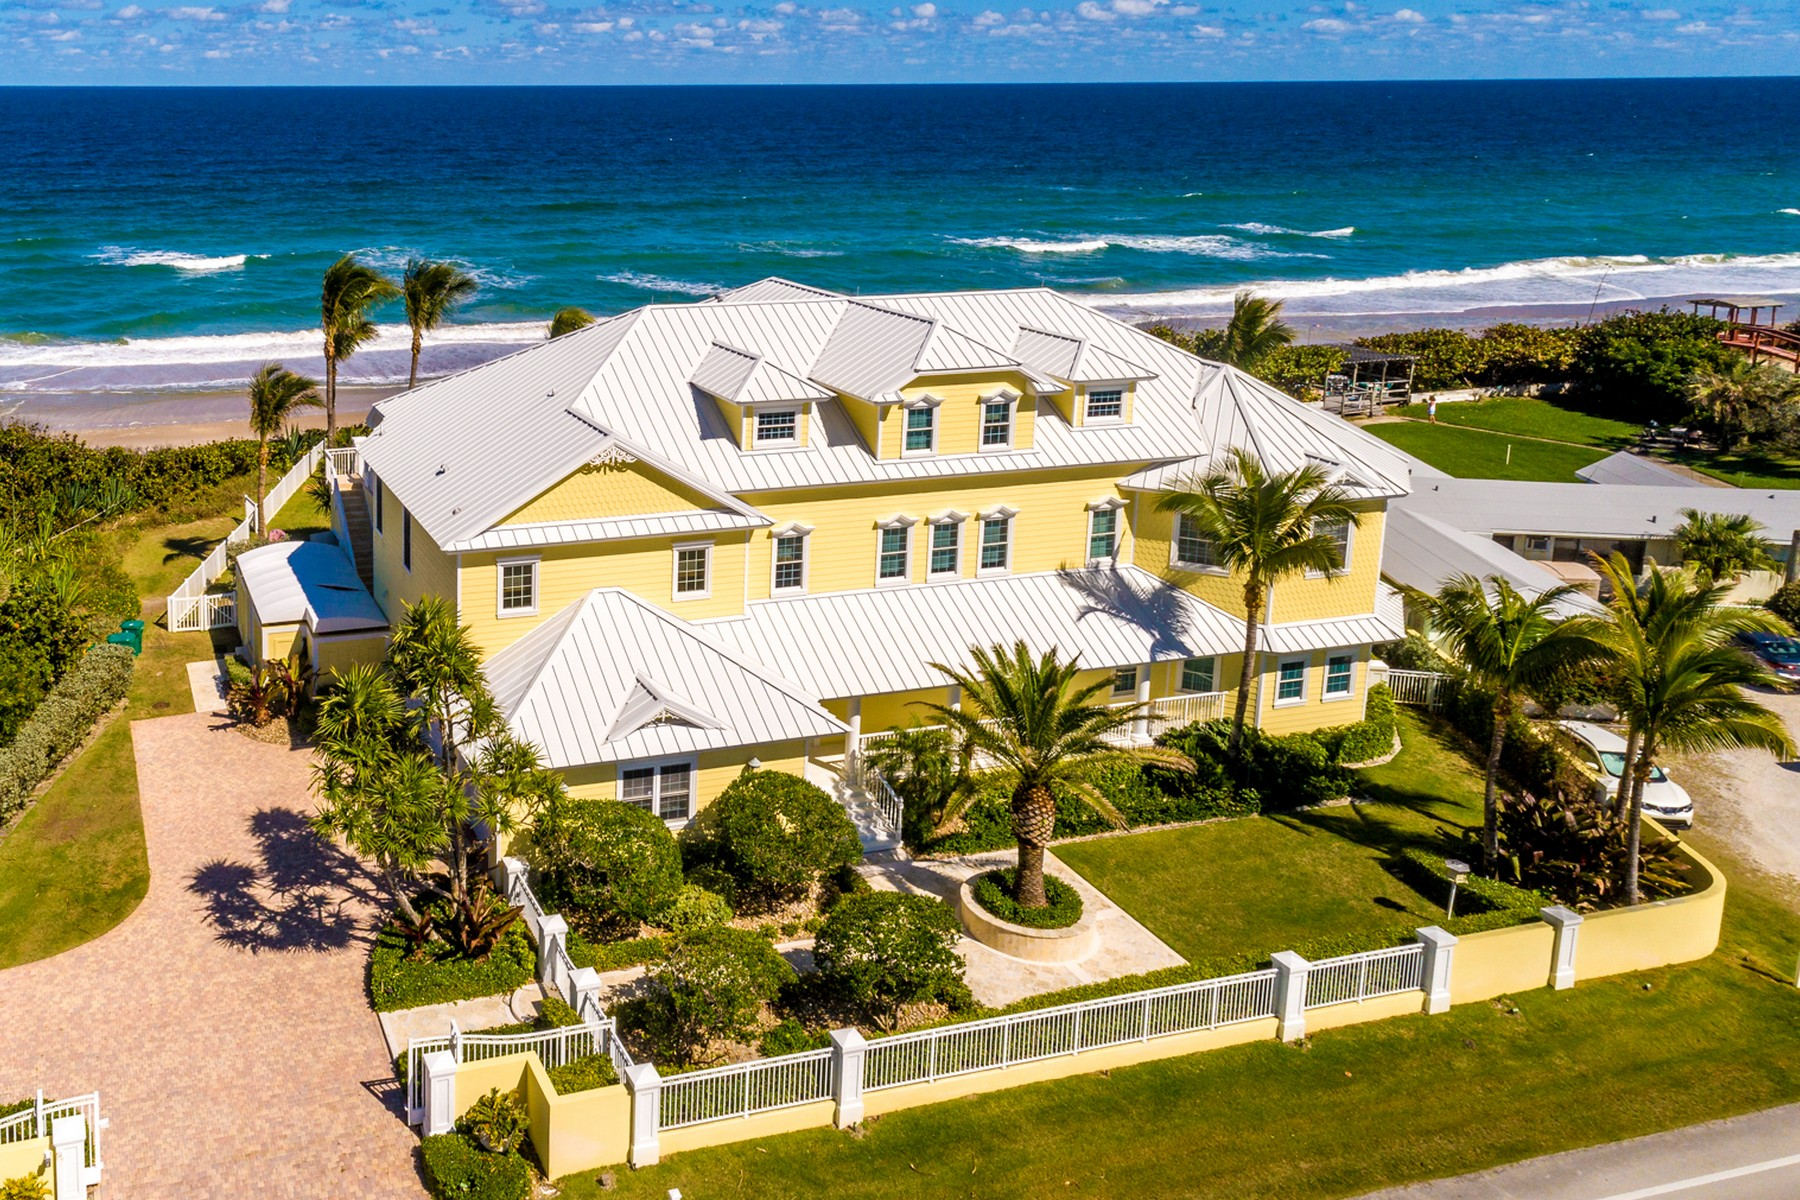 single family homes para Venda às Gorgeous Tropically Landscaped Home with Endless Ocean Vistas 5045 S Highway A1A Melbourne Beach, Florida 32951 Estados Unidos